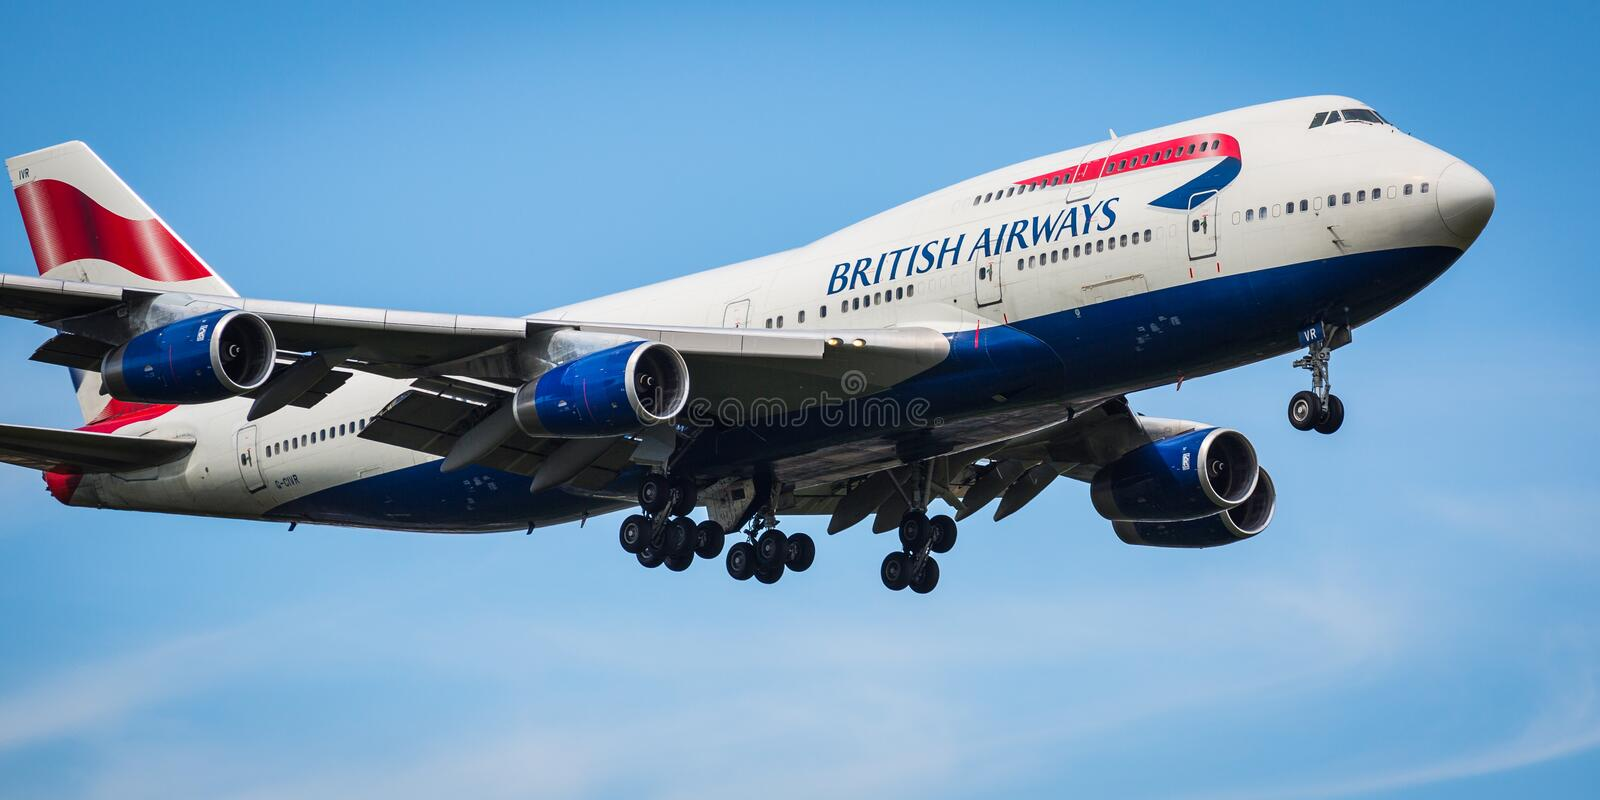 British Airways Boeing 747-400 avions image libre de droits